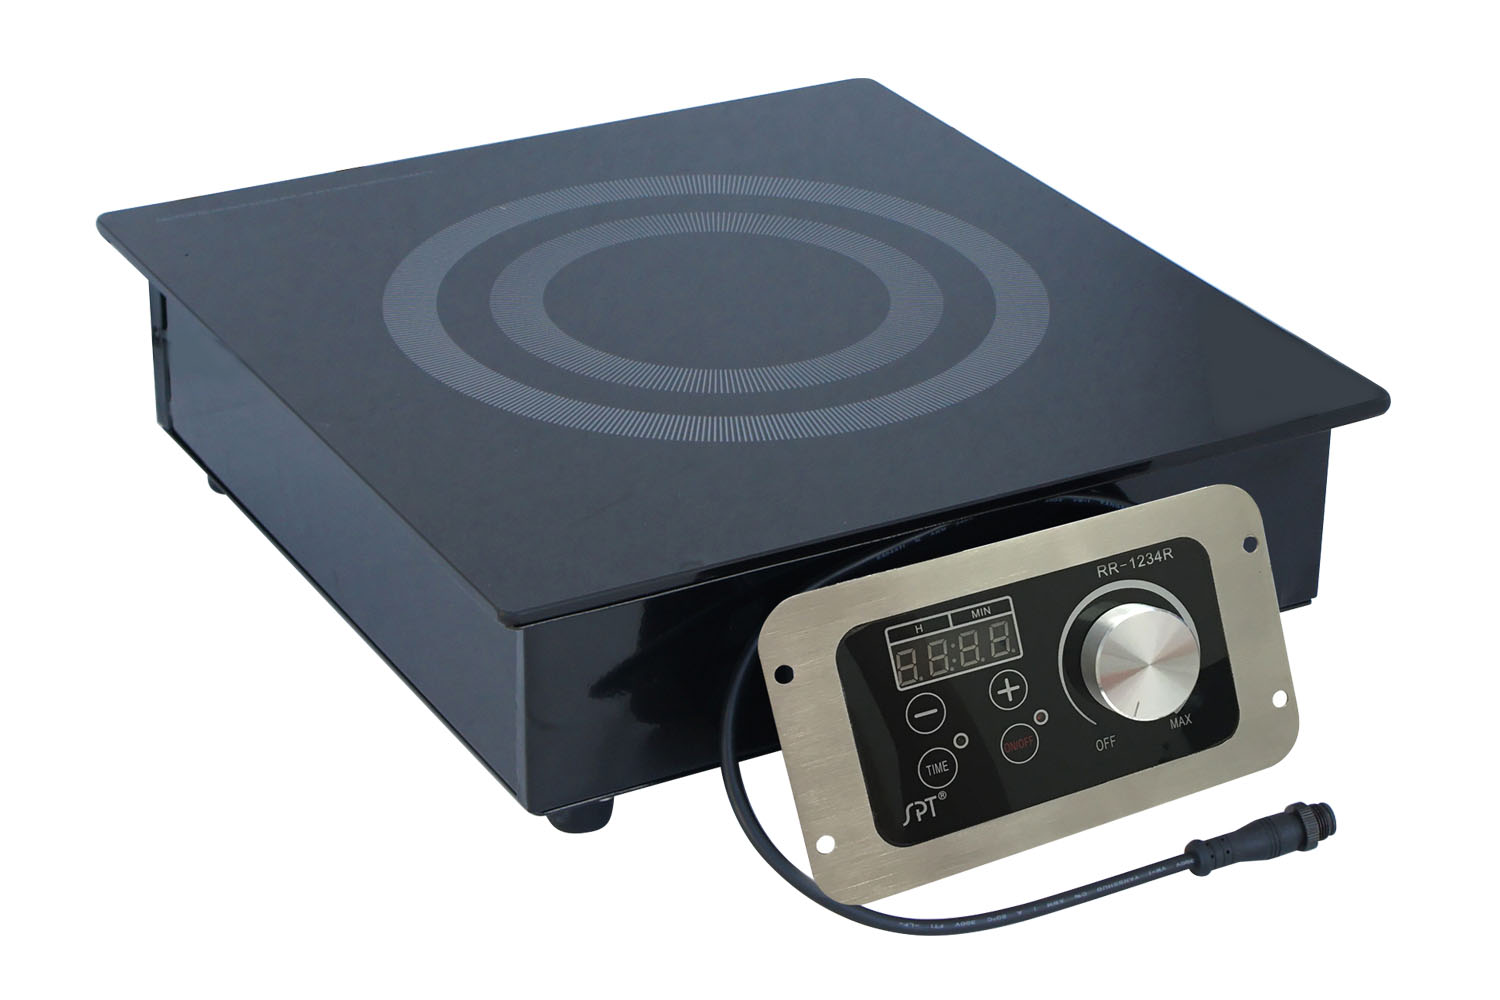 Sunpentown 1400W Built-In Radiant Cooktop (commercial grade)